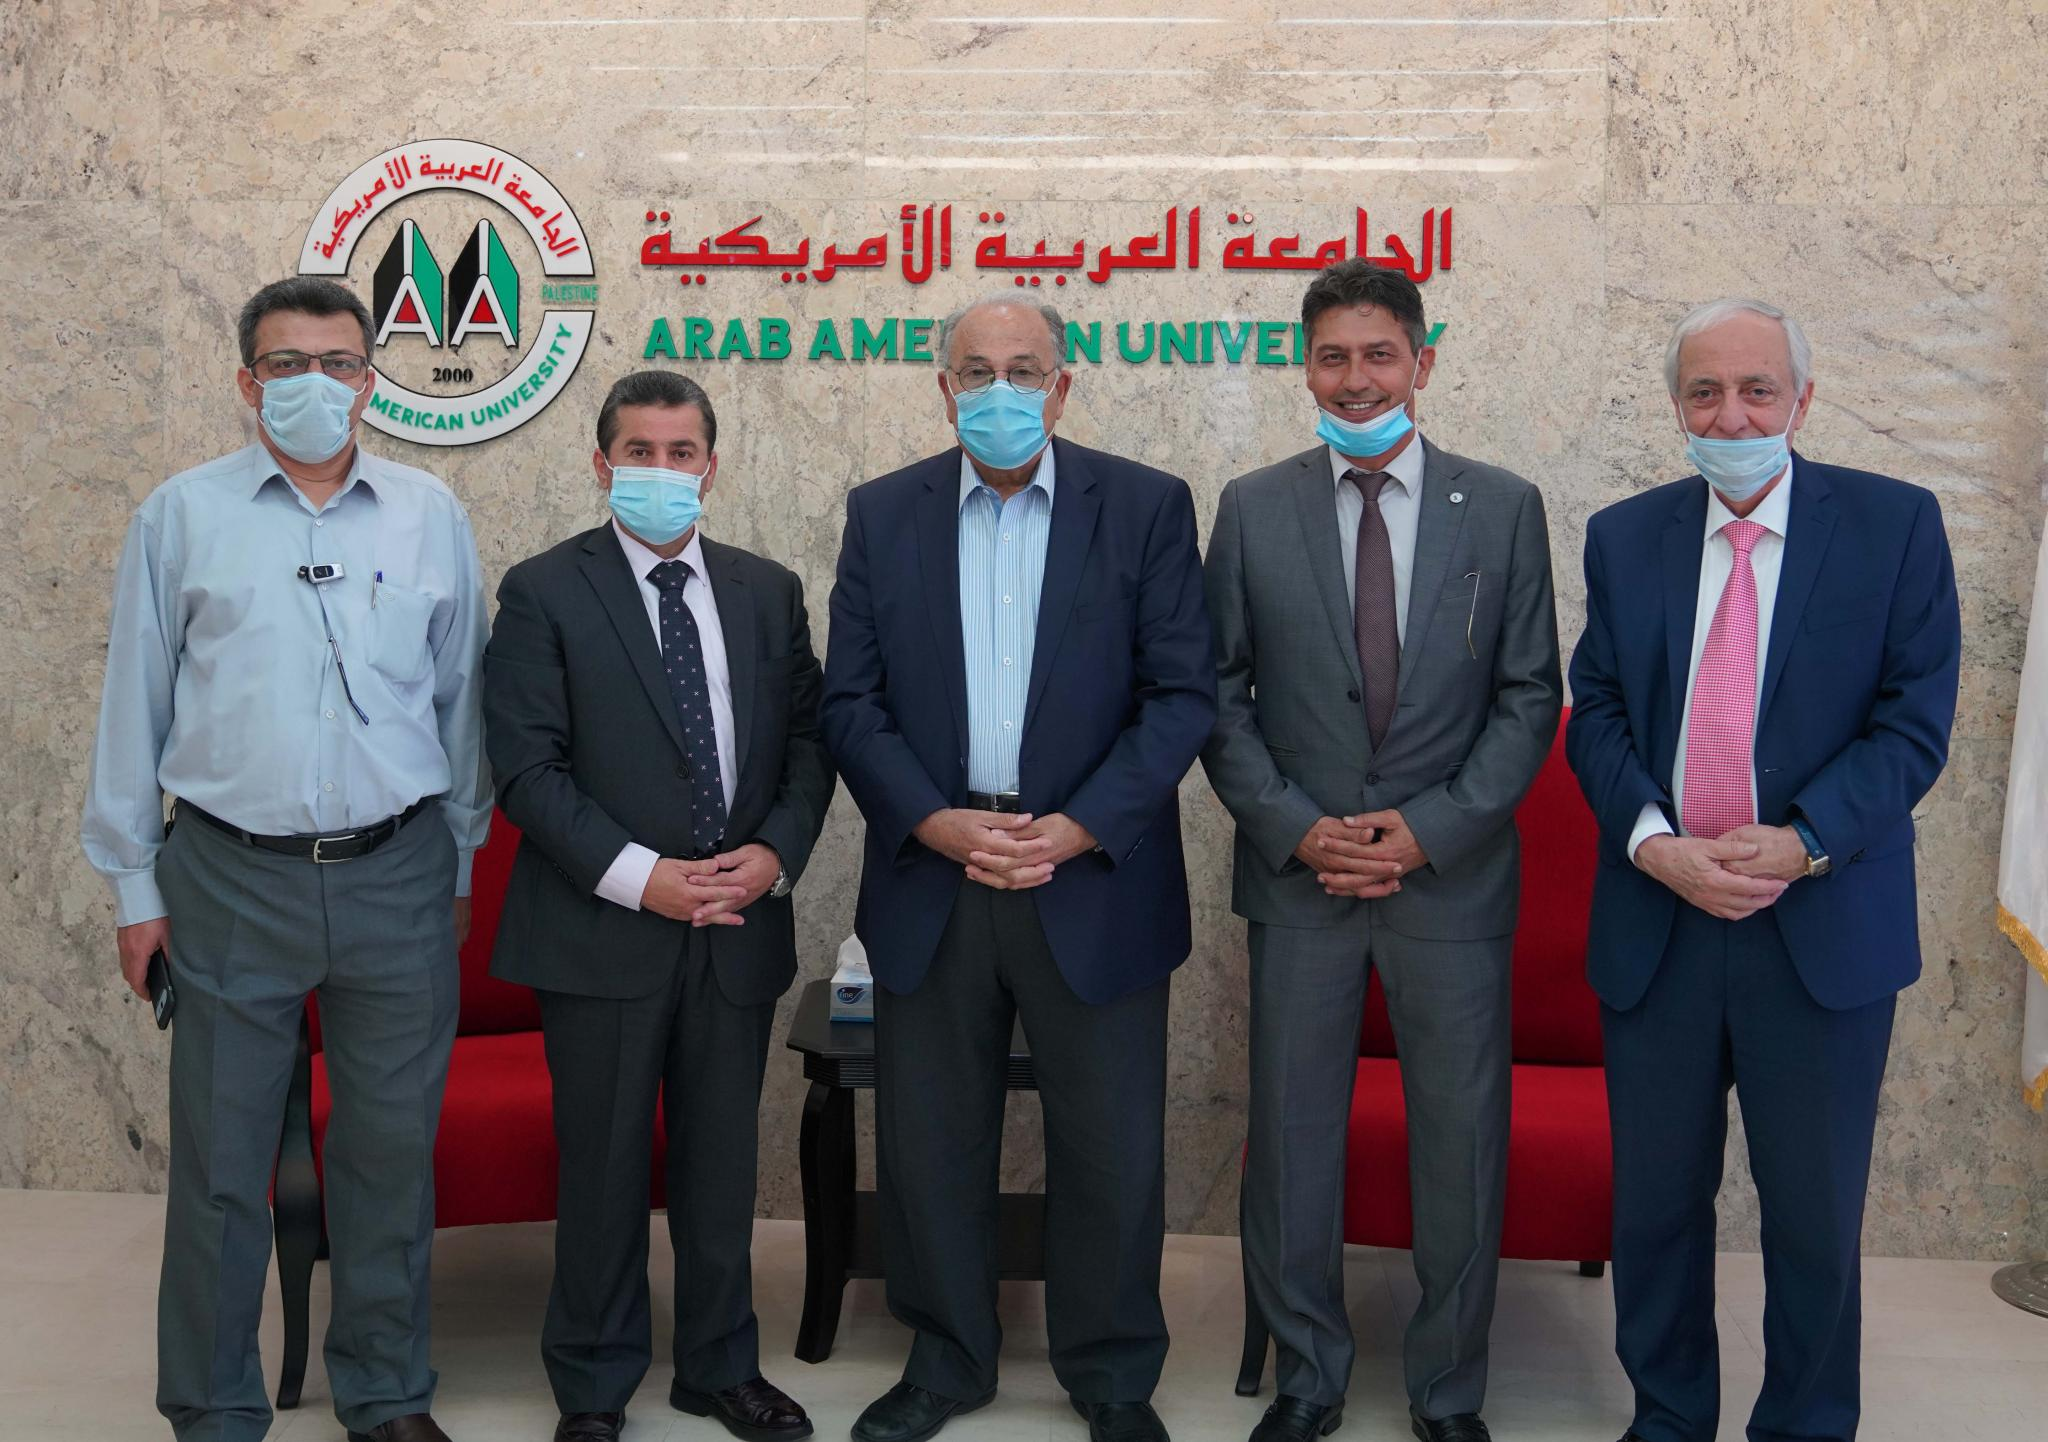 Dr. Imad Dwaikat assumed his duties as the Dean of the Faculty of Medicine in Arab American University.